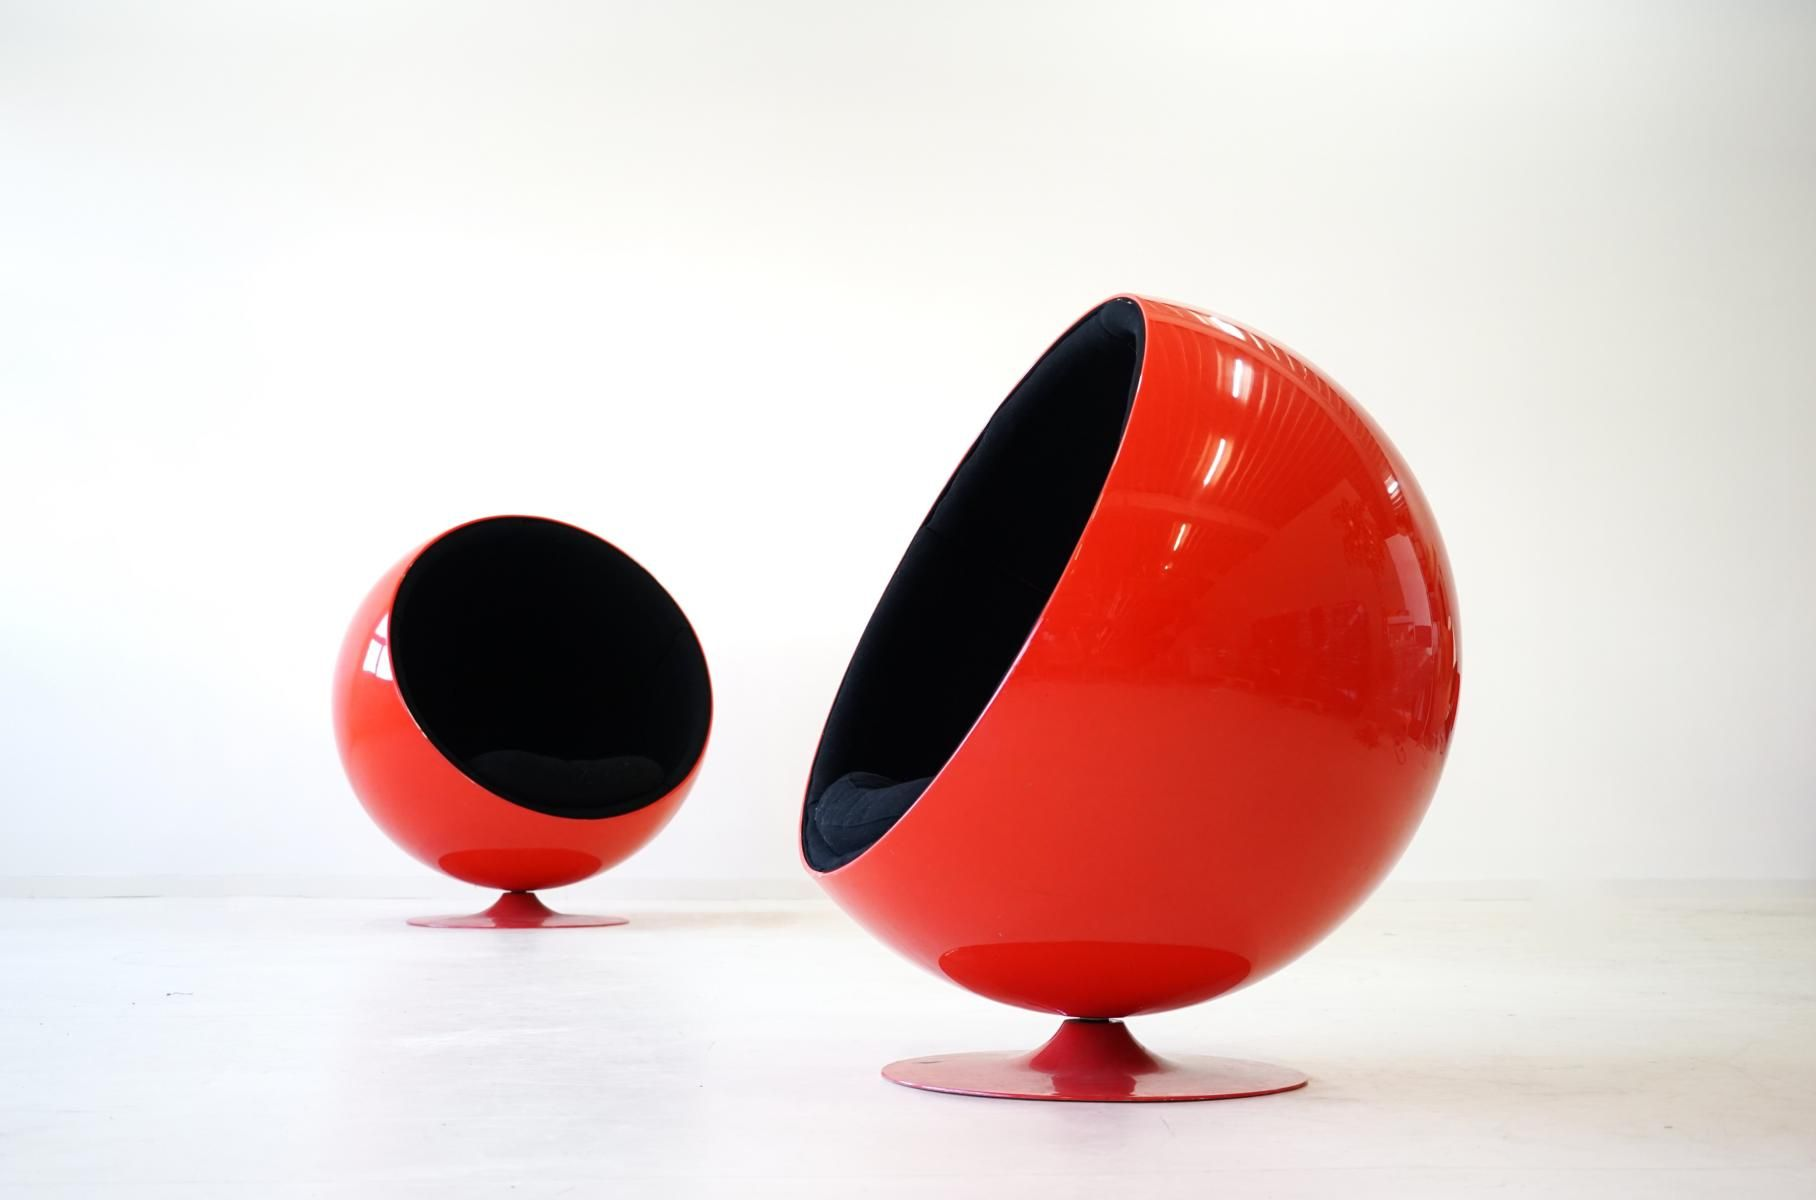 Vintage Ball Chairs by Eero Aarnio for Asko Set of 2 for sale at